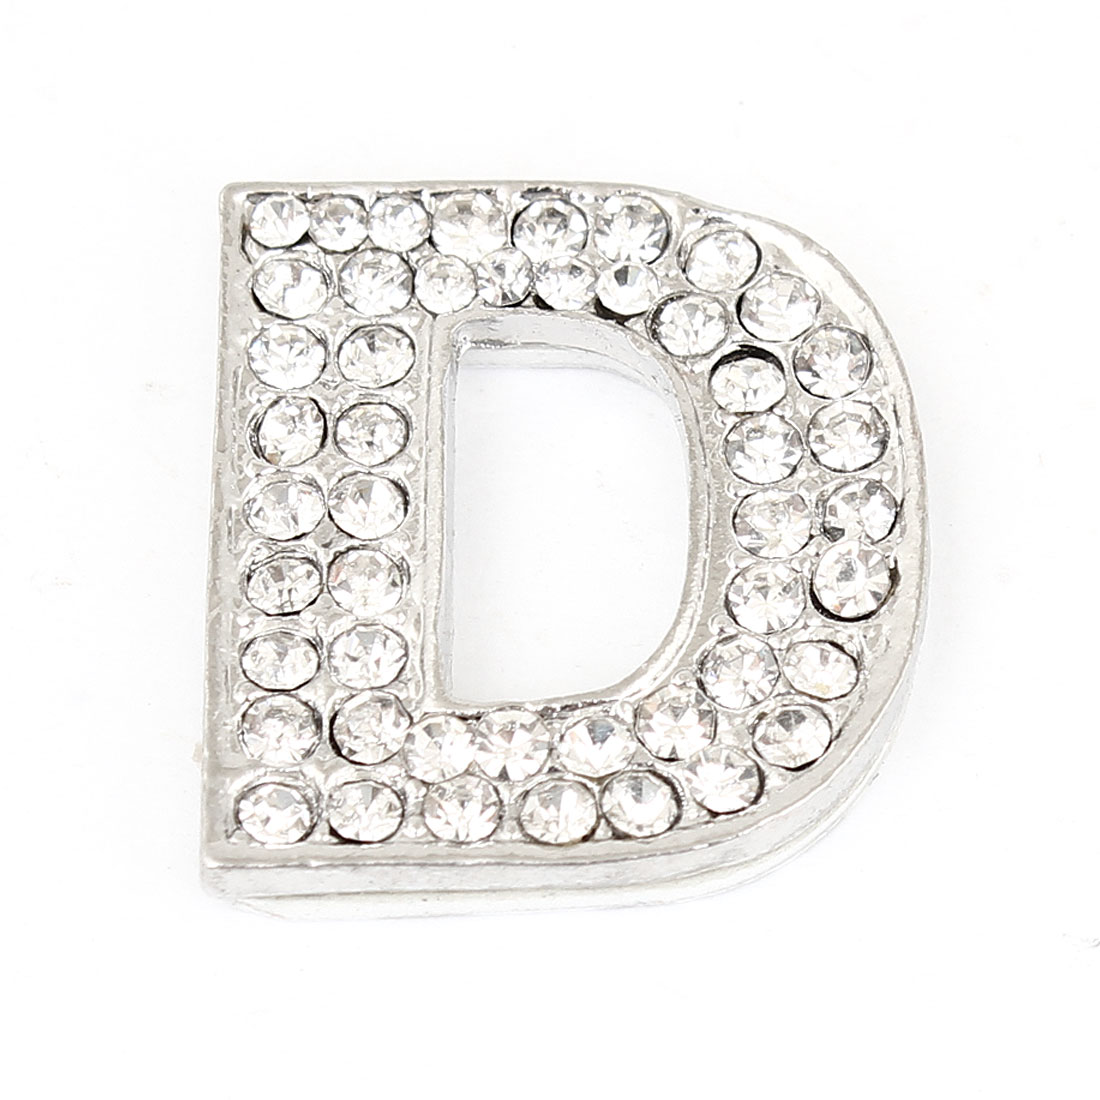 Rhinestones Inlaid Silver Tone Letter D Shaped Sticker Decoration for Car Truck